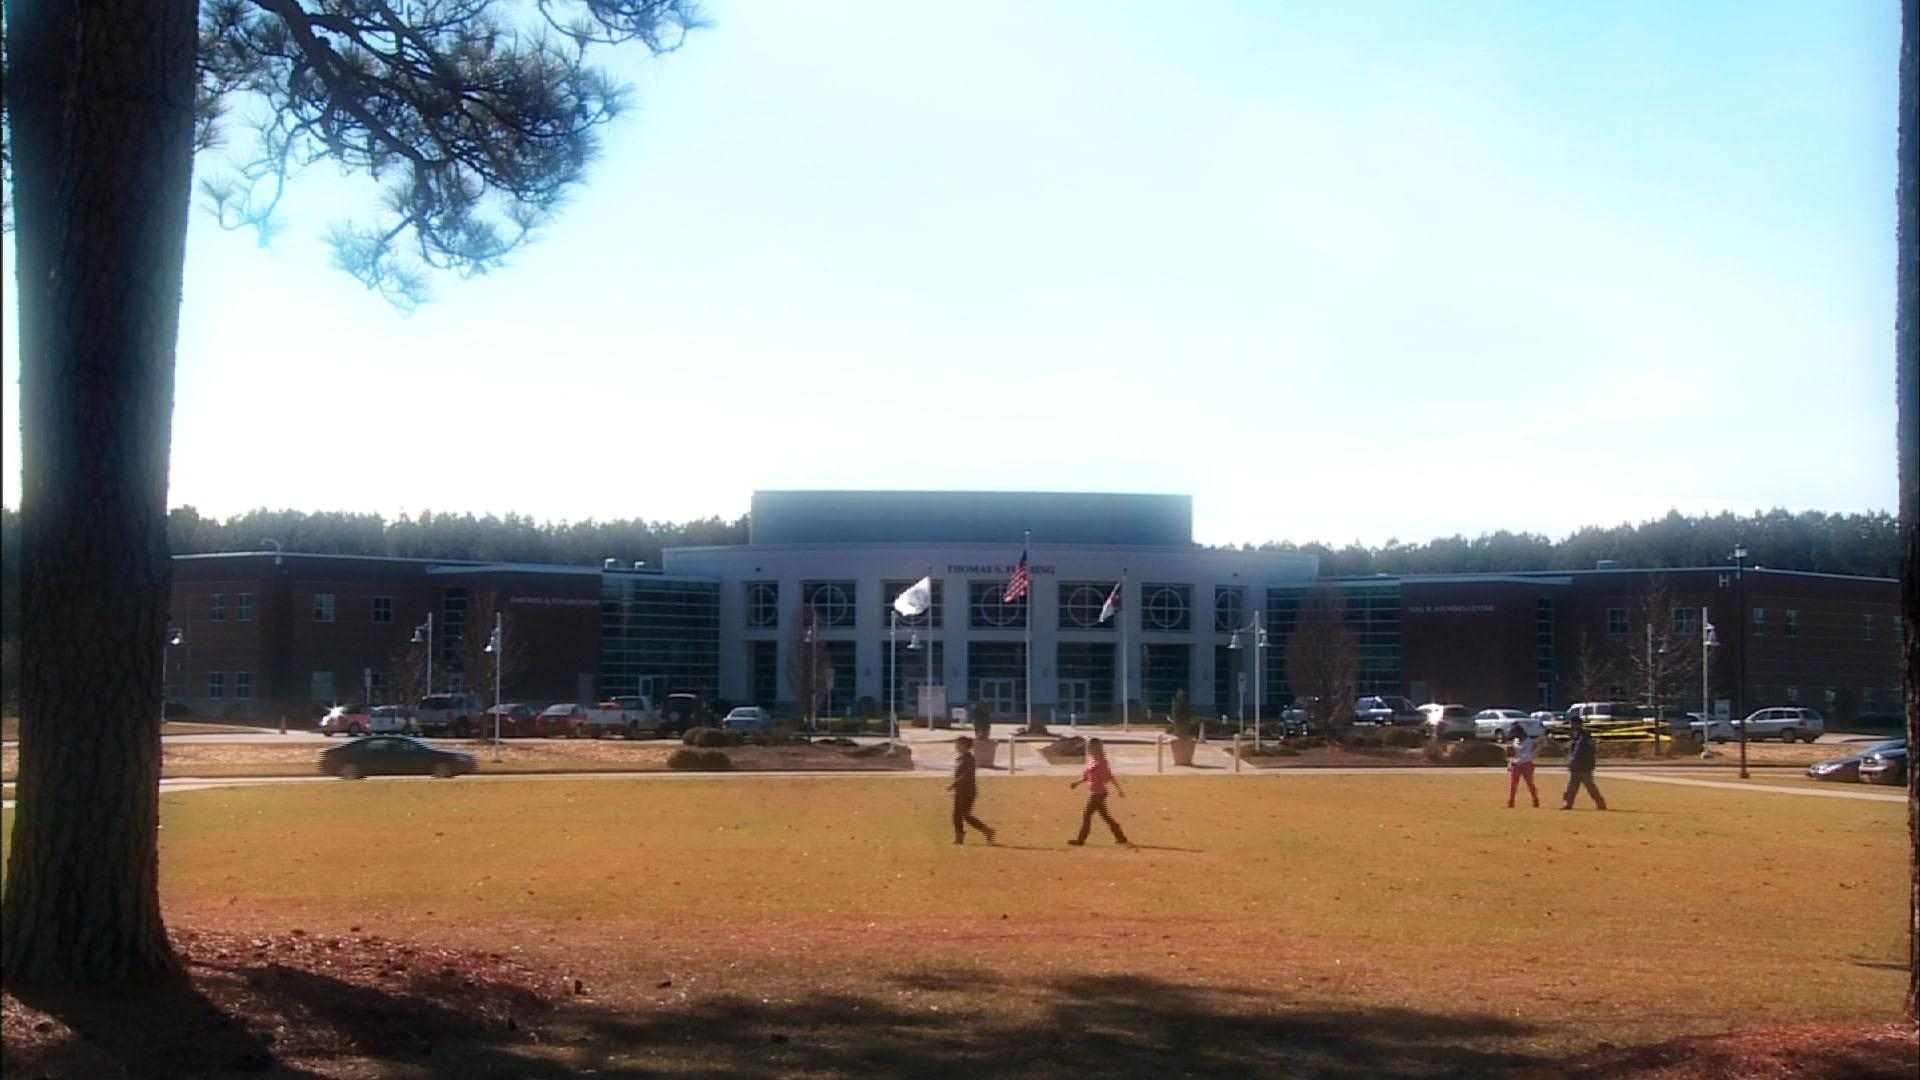 Edgecombe Community College image